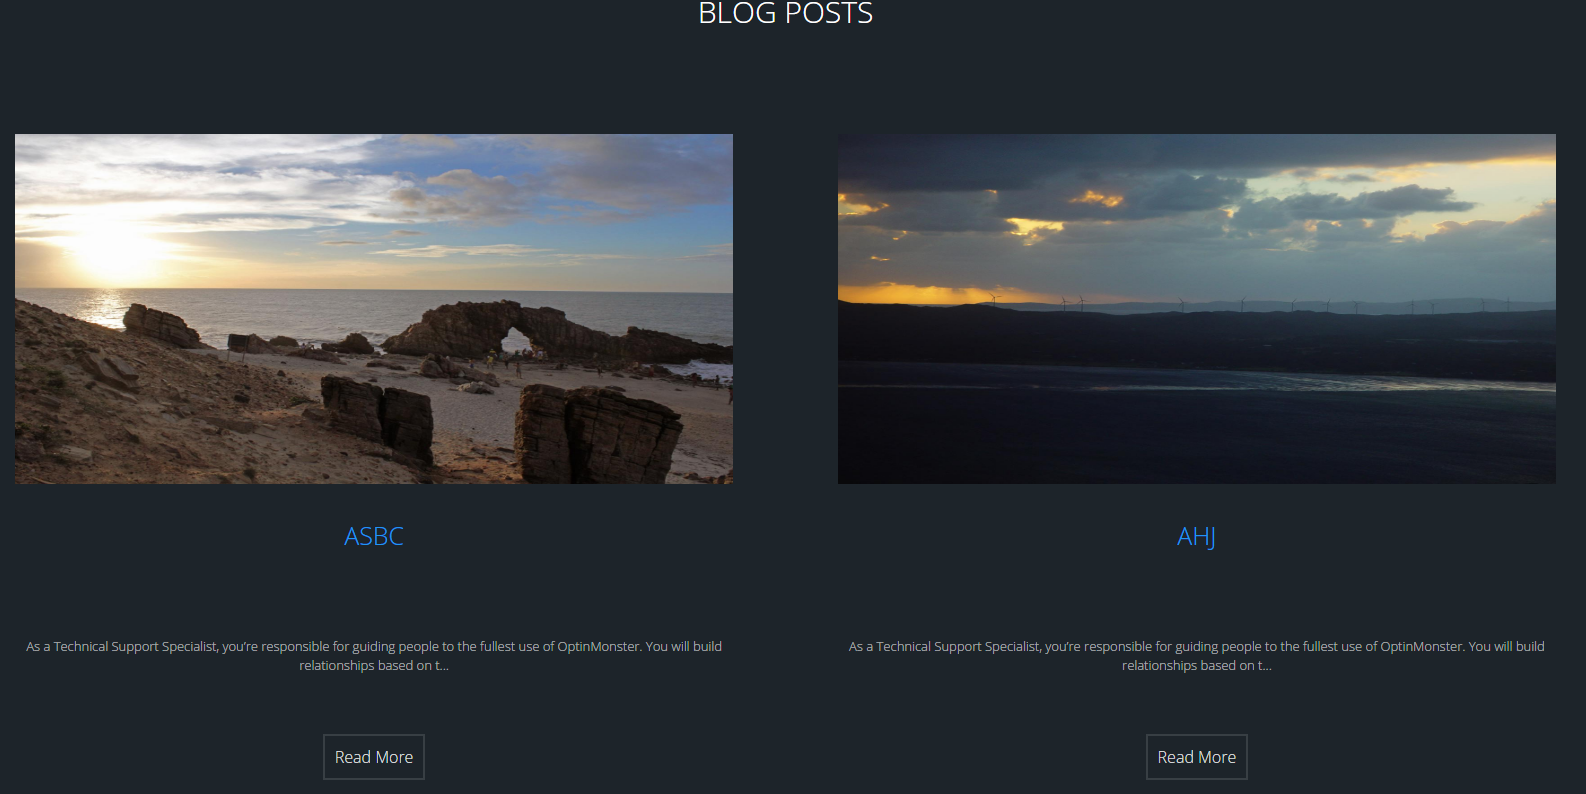 2 Side by Side Posts with Post Image, Post Title, Excerpt and a Read More Button